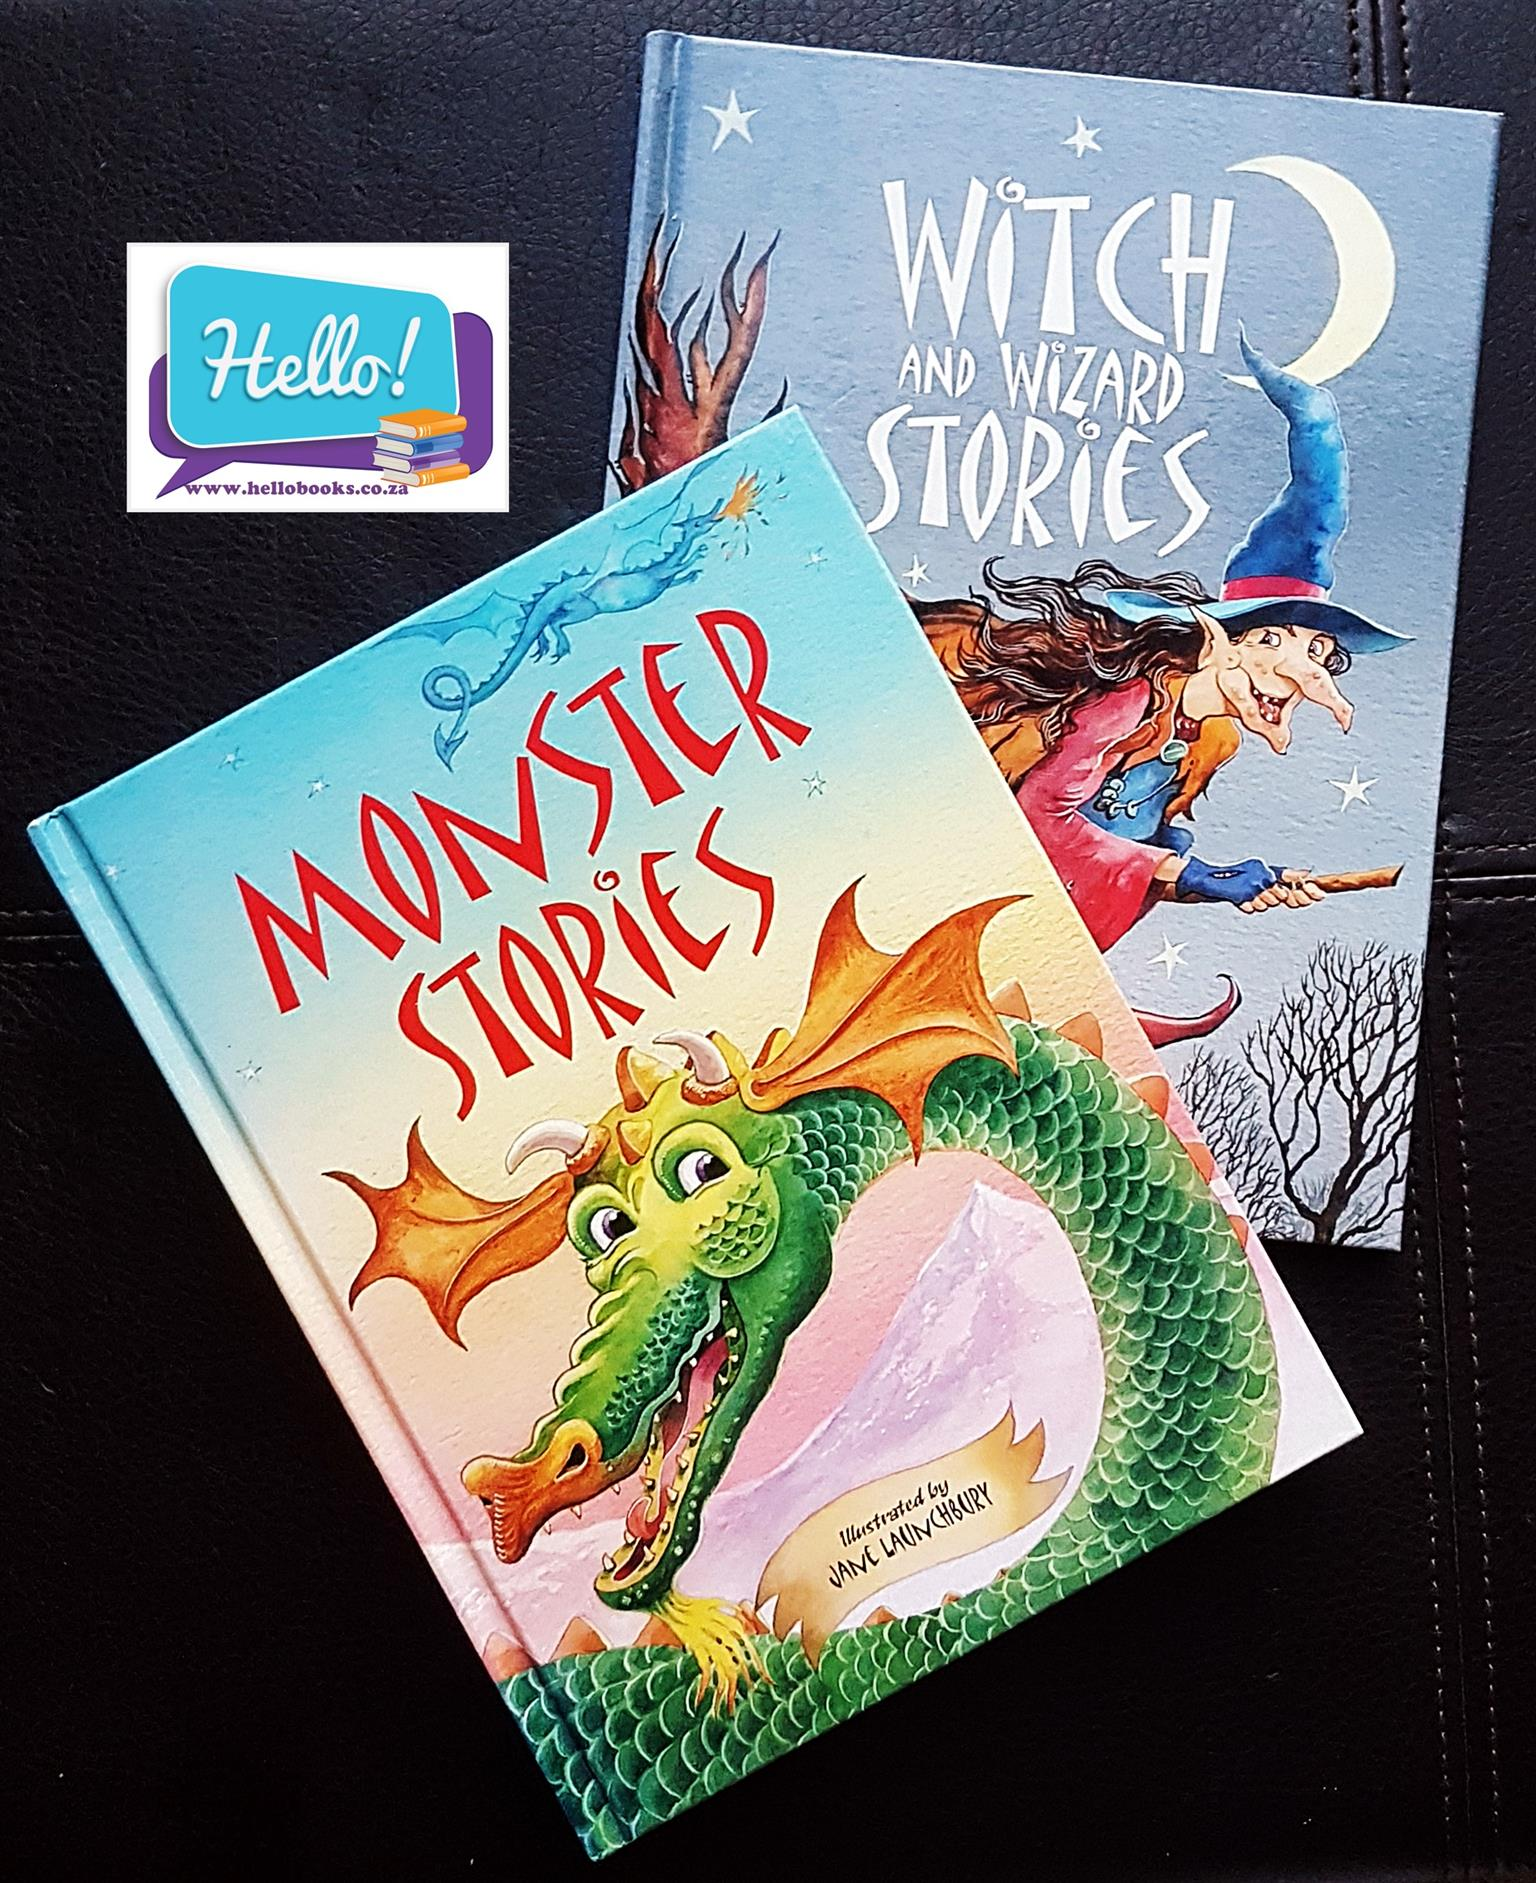 Fantasy and Magic Stories for Ages 7 Up